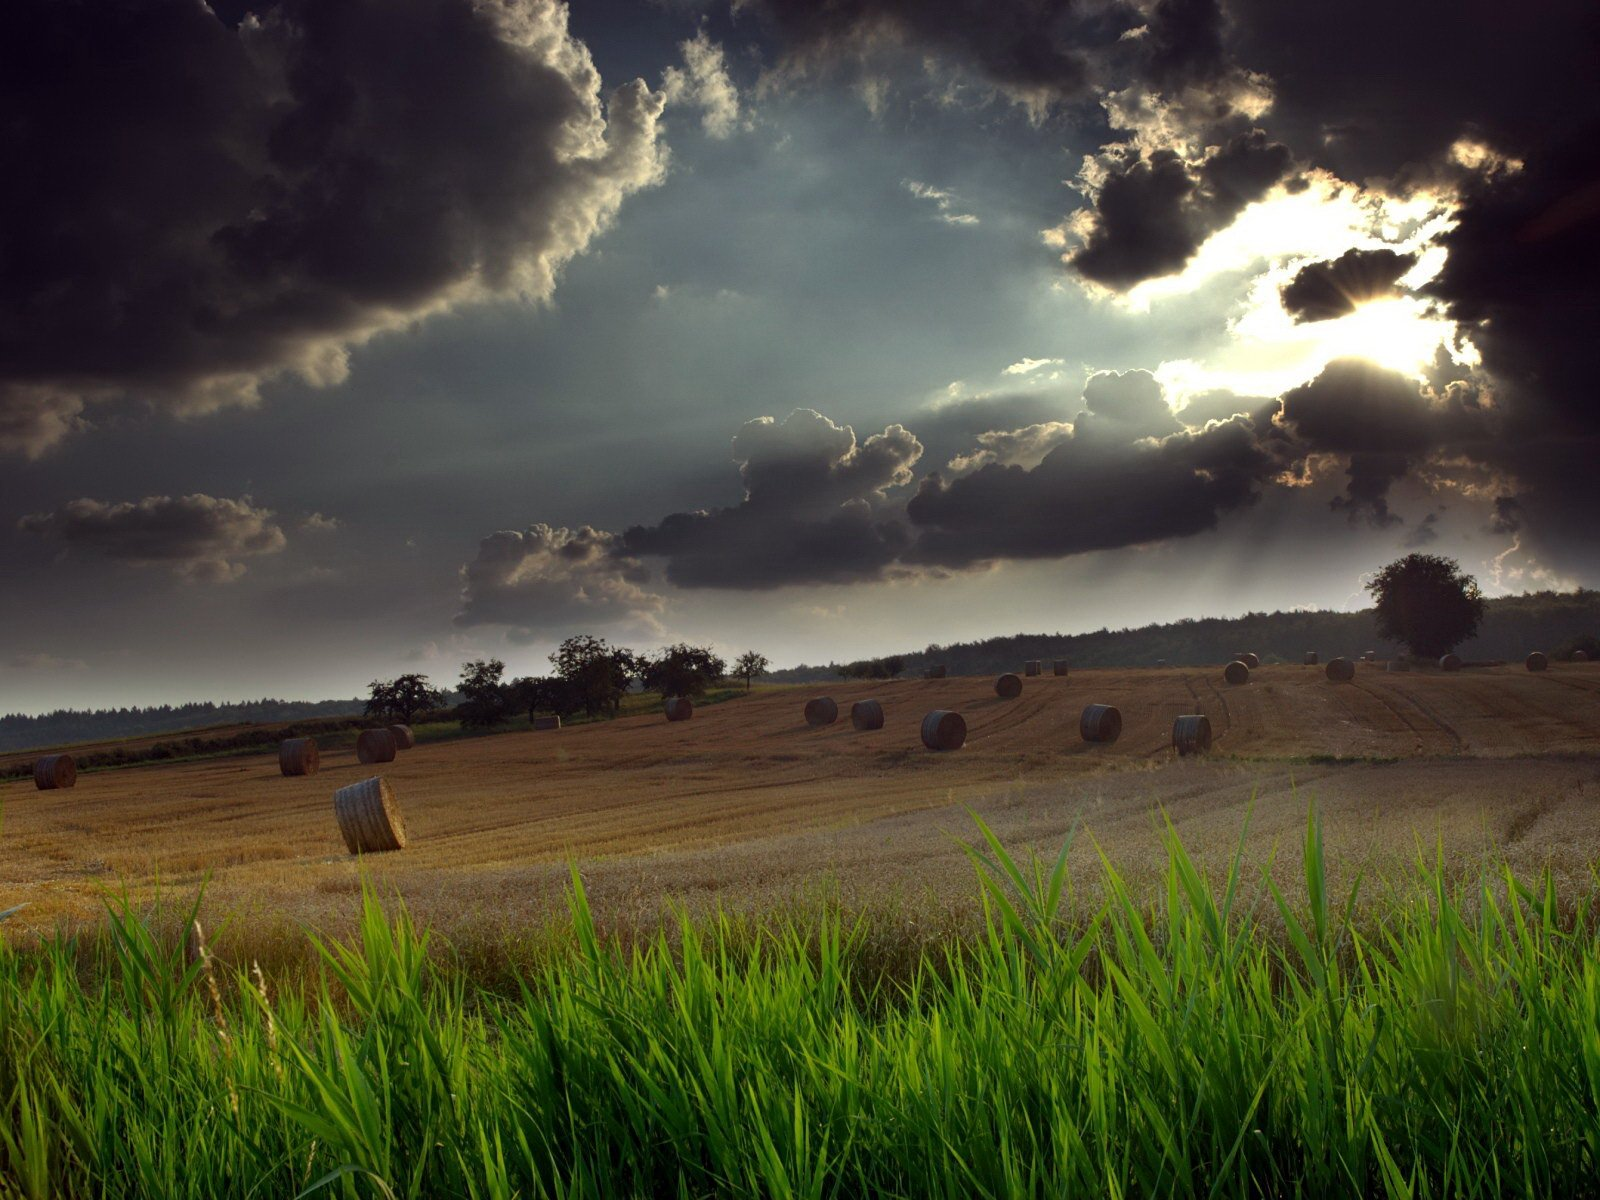 Thunderstorm above the field wallpaper - Nature wallpapers - Free ...